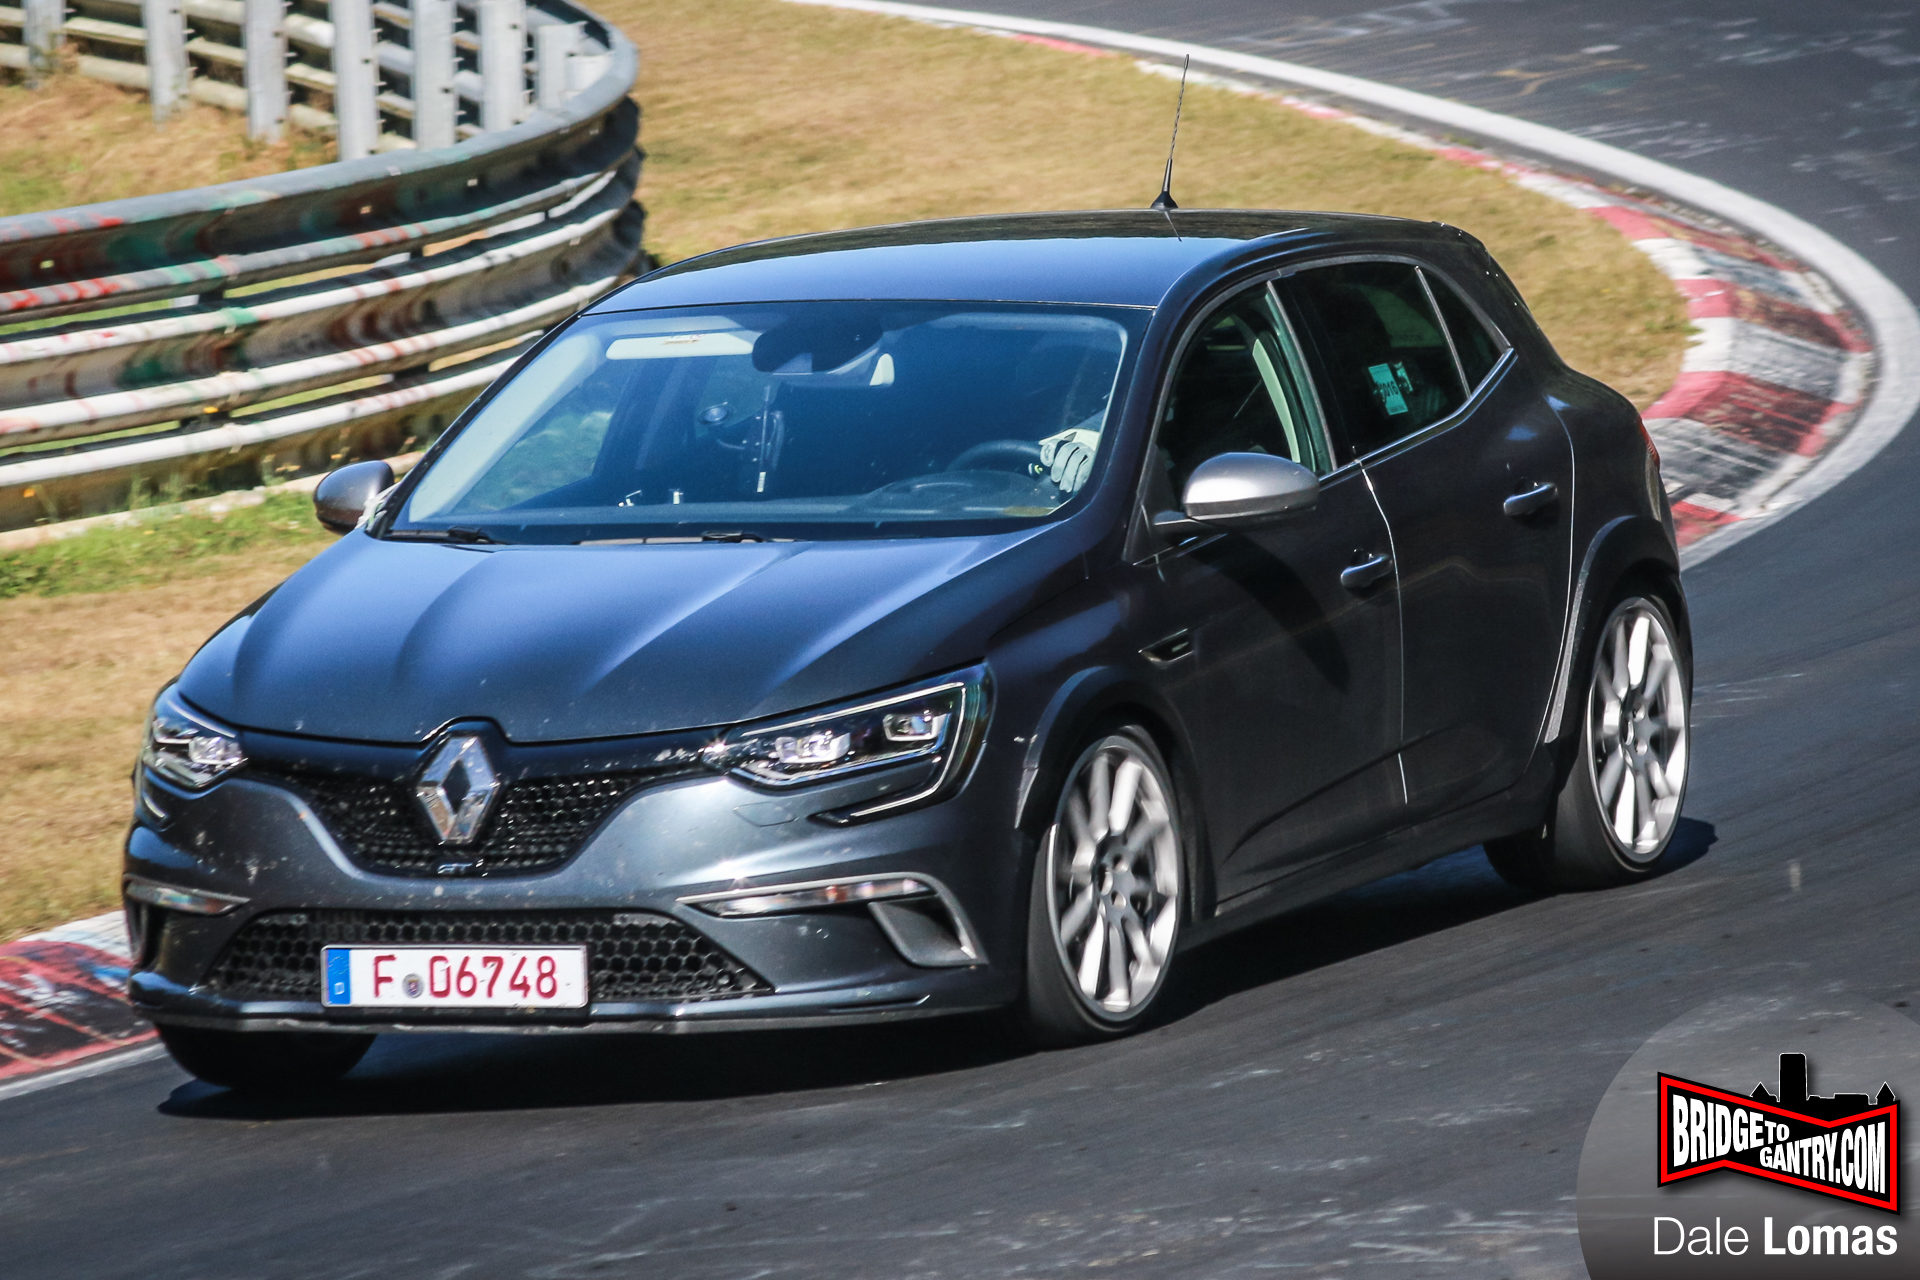 new 2018 renault megane rs flying on nurburgring spyshots seem to confirm fwd autoevolution. Black Bedroom Furniture Sets. Home Design Ideas